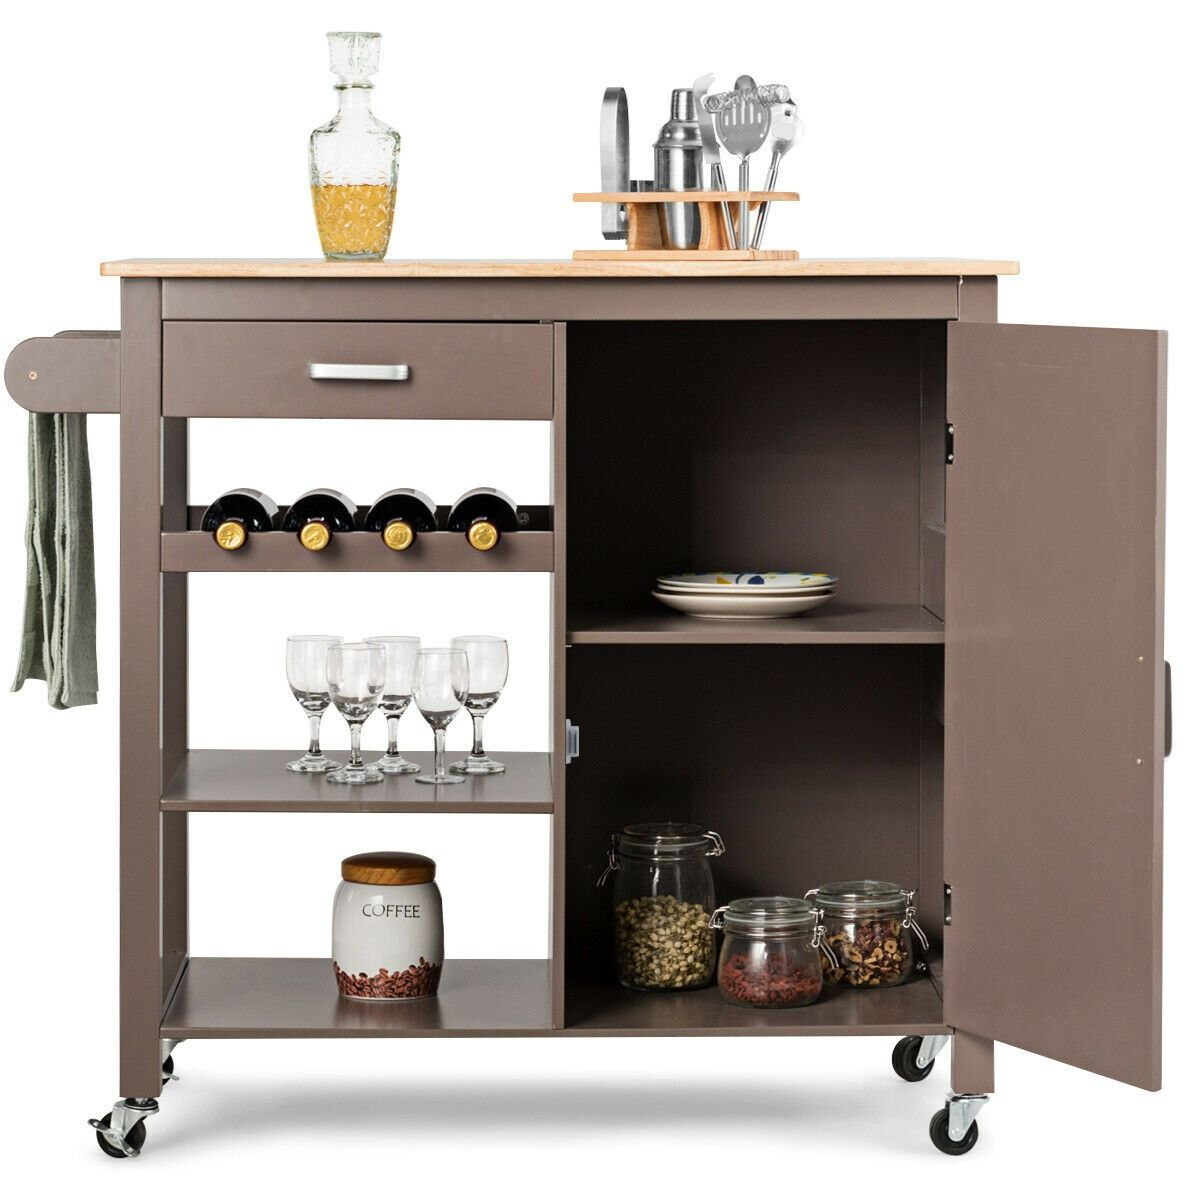 Storage Cabinet With Wine Rack Shelf